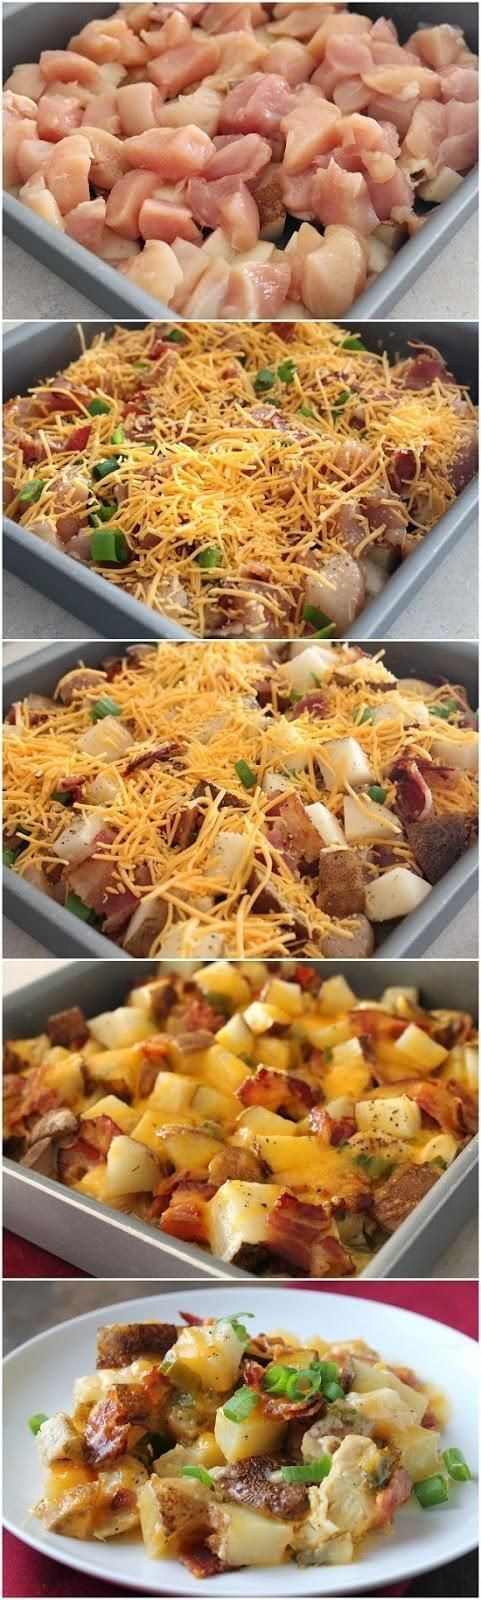 Loaded Chicken and Potatoes Casserole | Jodeze Home and Garden http://jodezehomeandgarden.com/